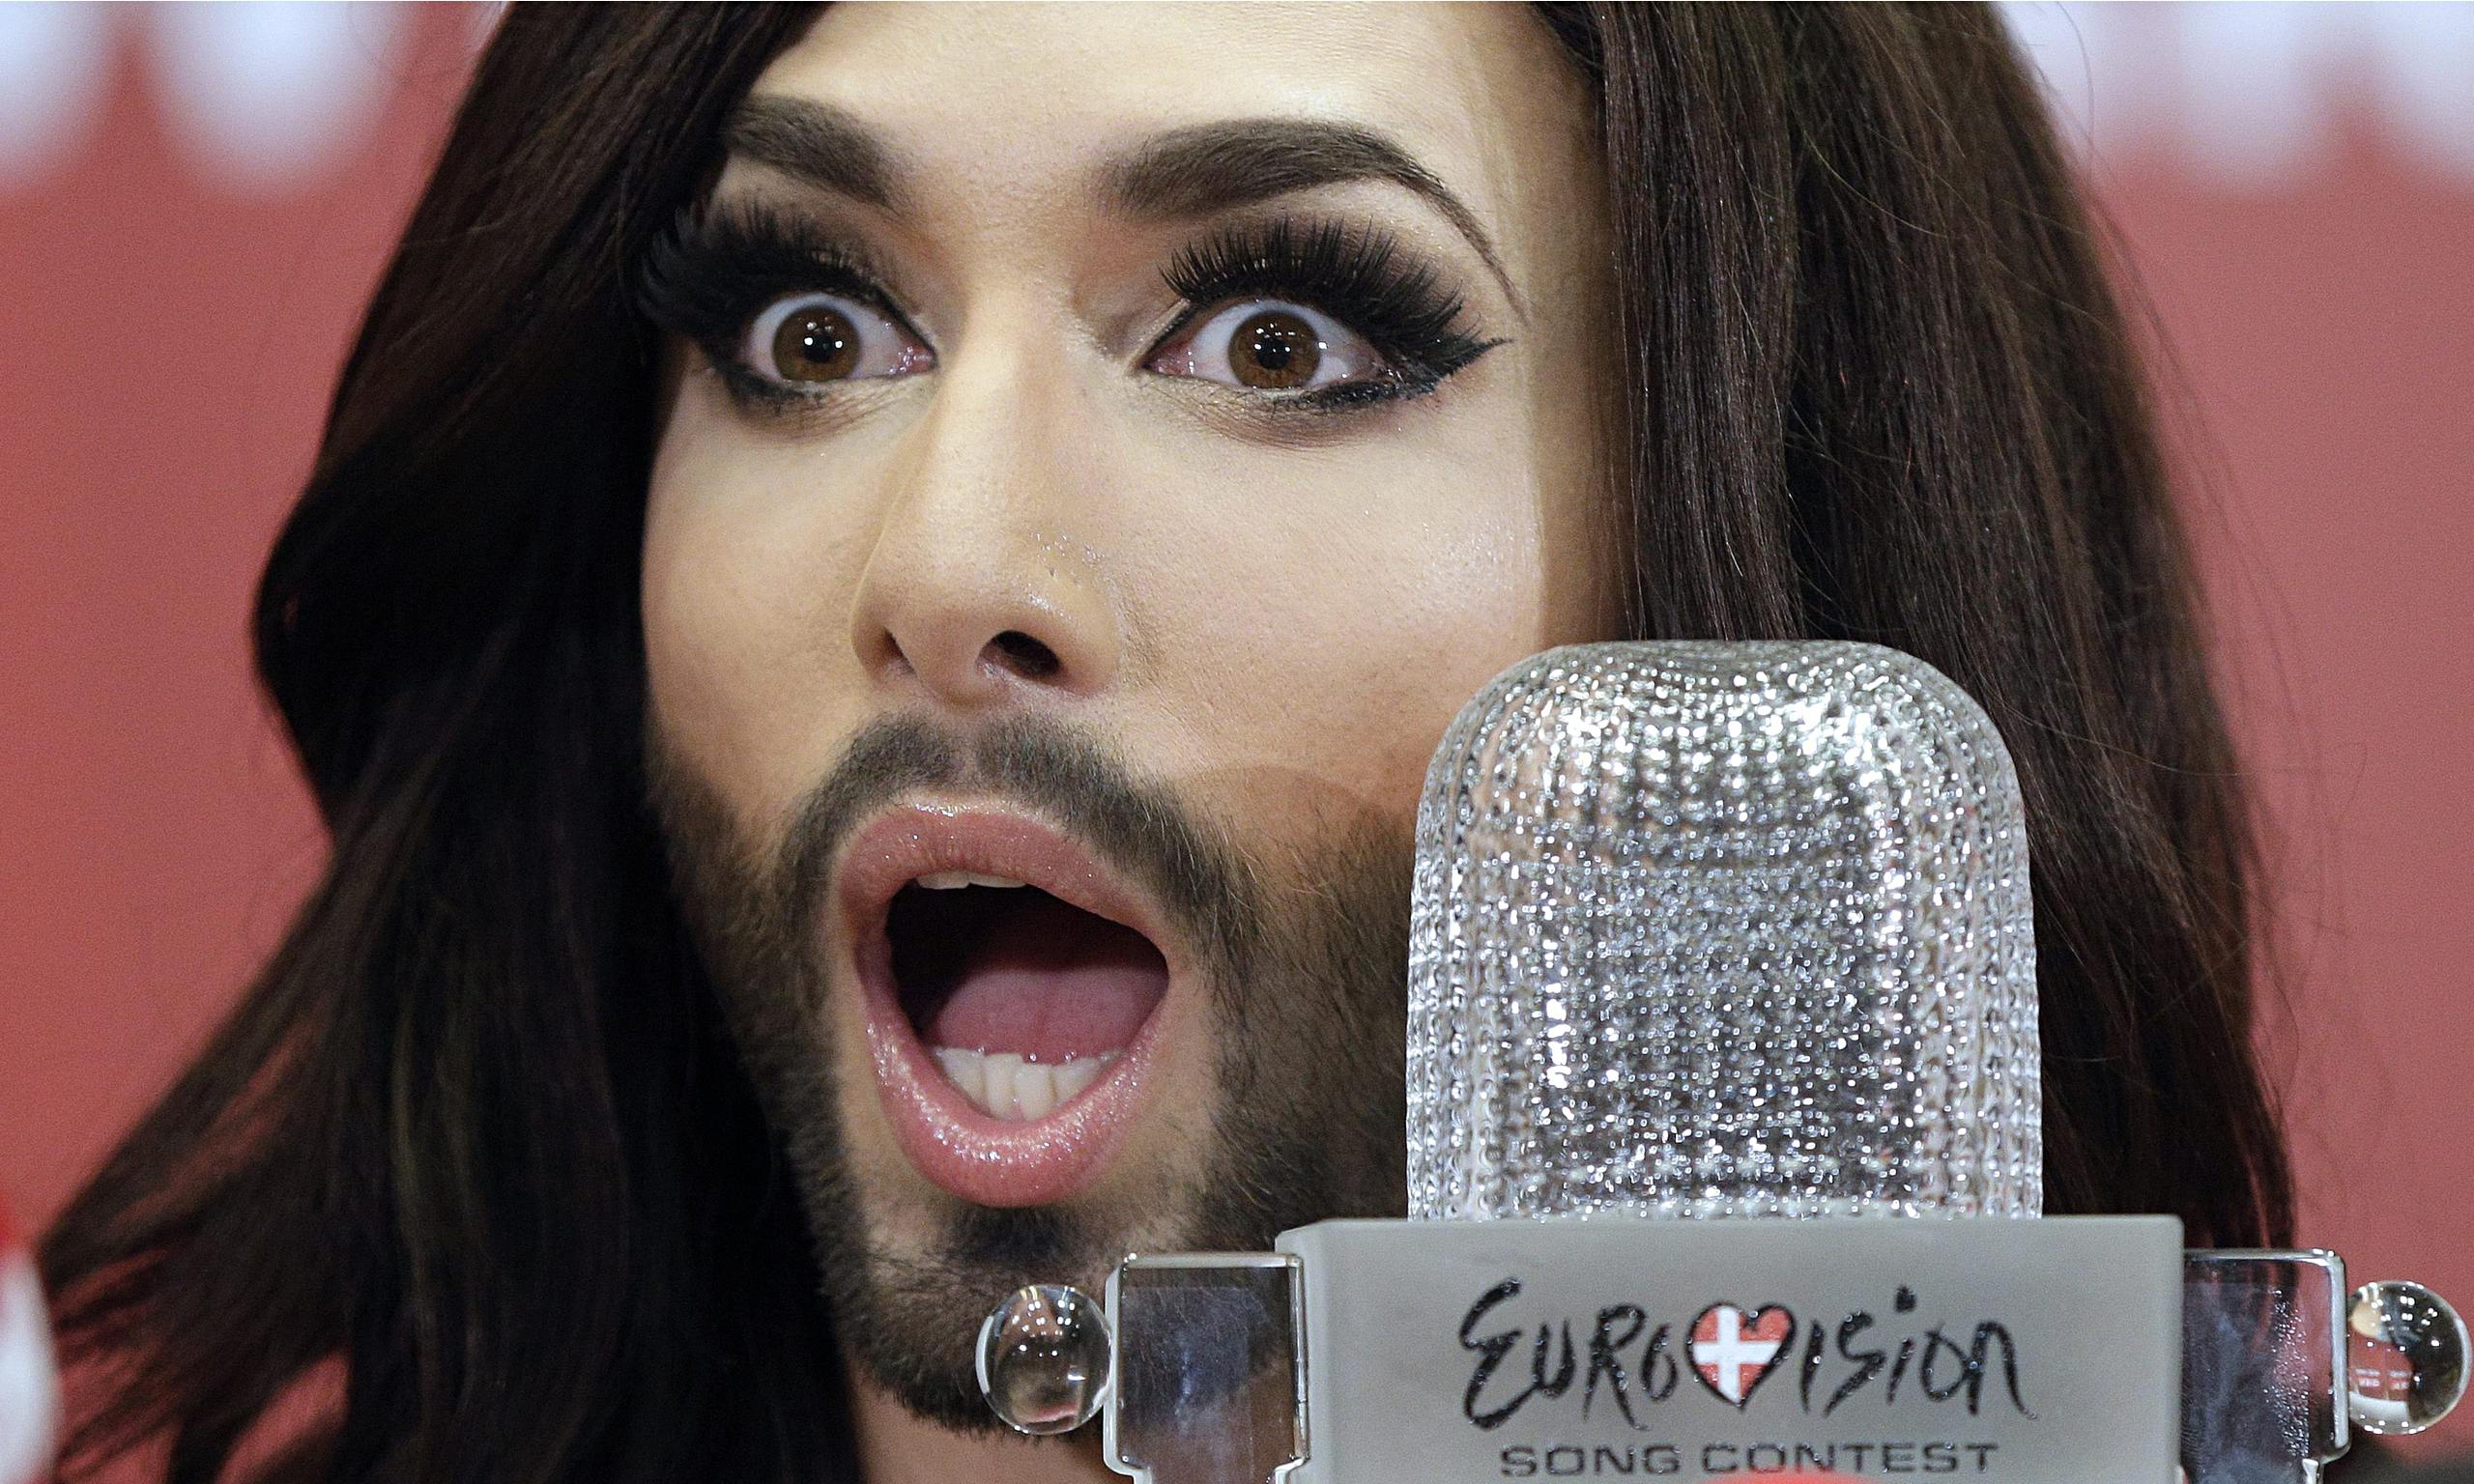 http://static.guim.co.uk/sys-images/Guardian/Pix/pictures/2014/5/11/1399822156781/Conchita-Wurst-014.jpg